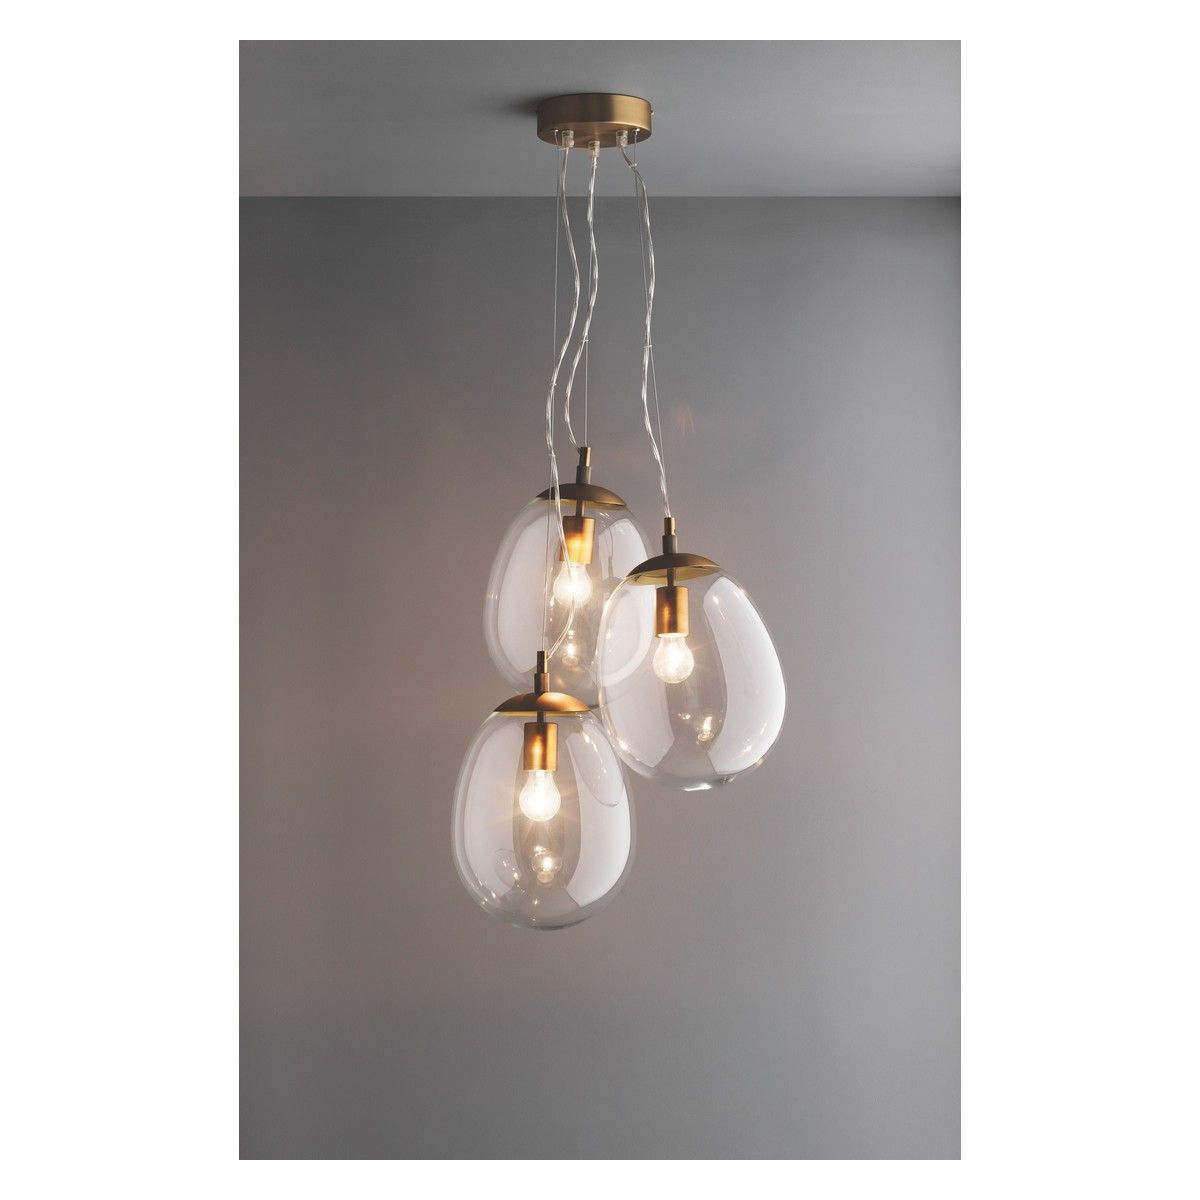 Bulle clear glass triple drop ceiling light dropped ceiling designed by and exclusive to habitat the beautiful bulle clear glass triple drop ceiling light has a pleasingly organic shape and luxurious brass fittings arubaitofo Images